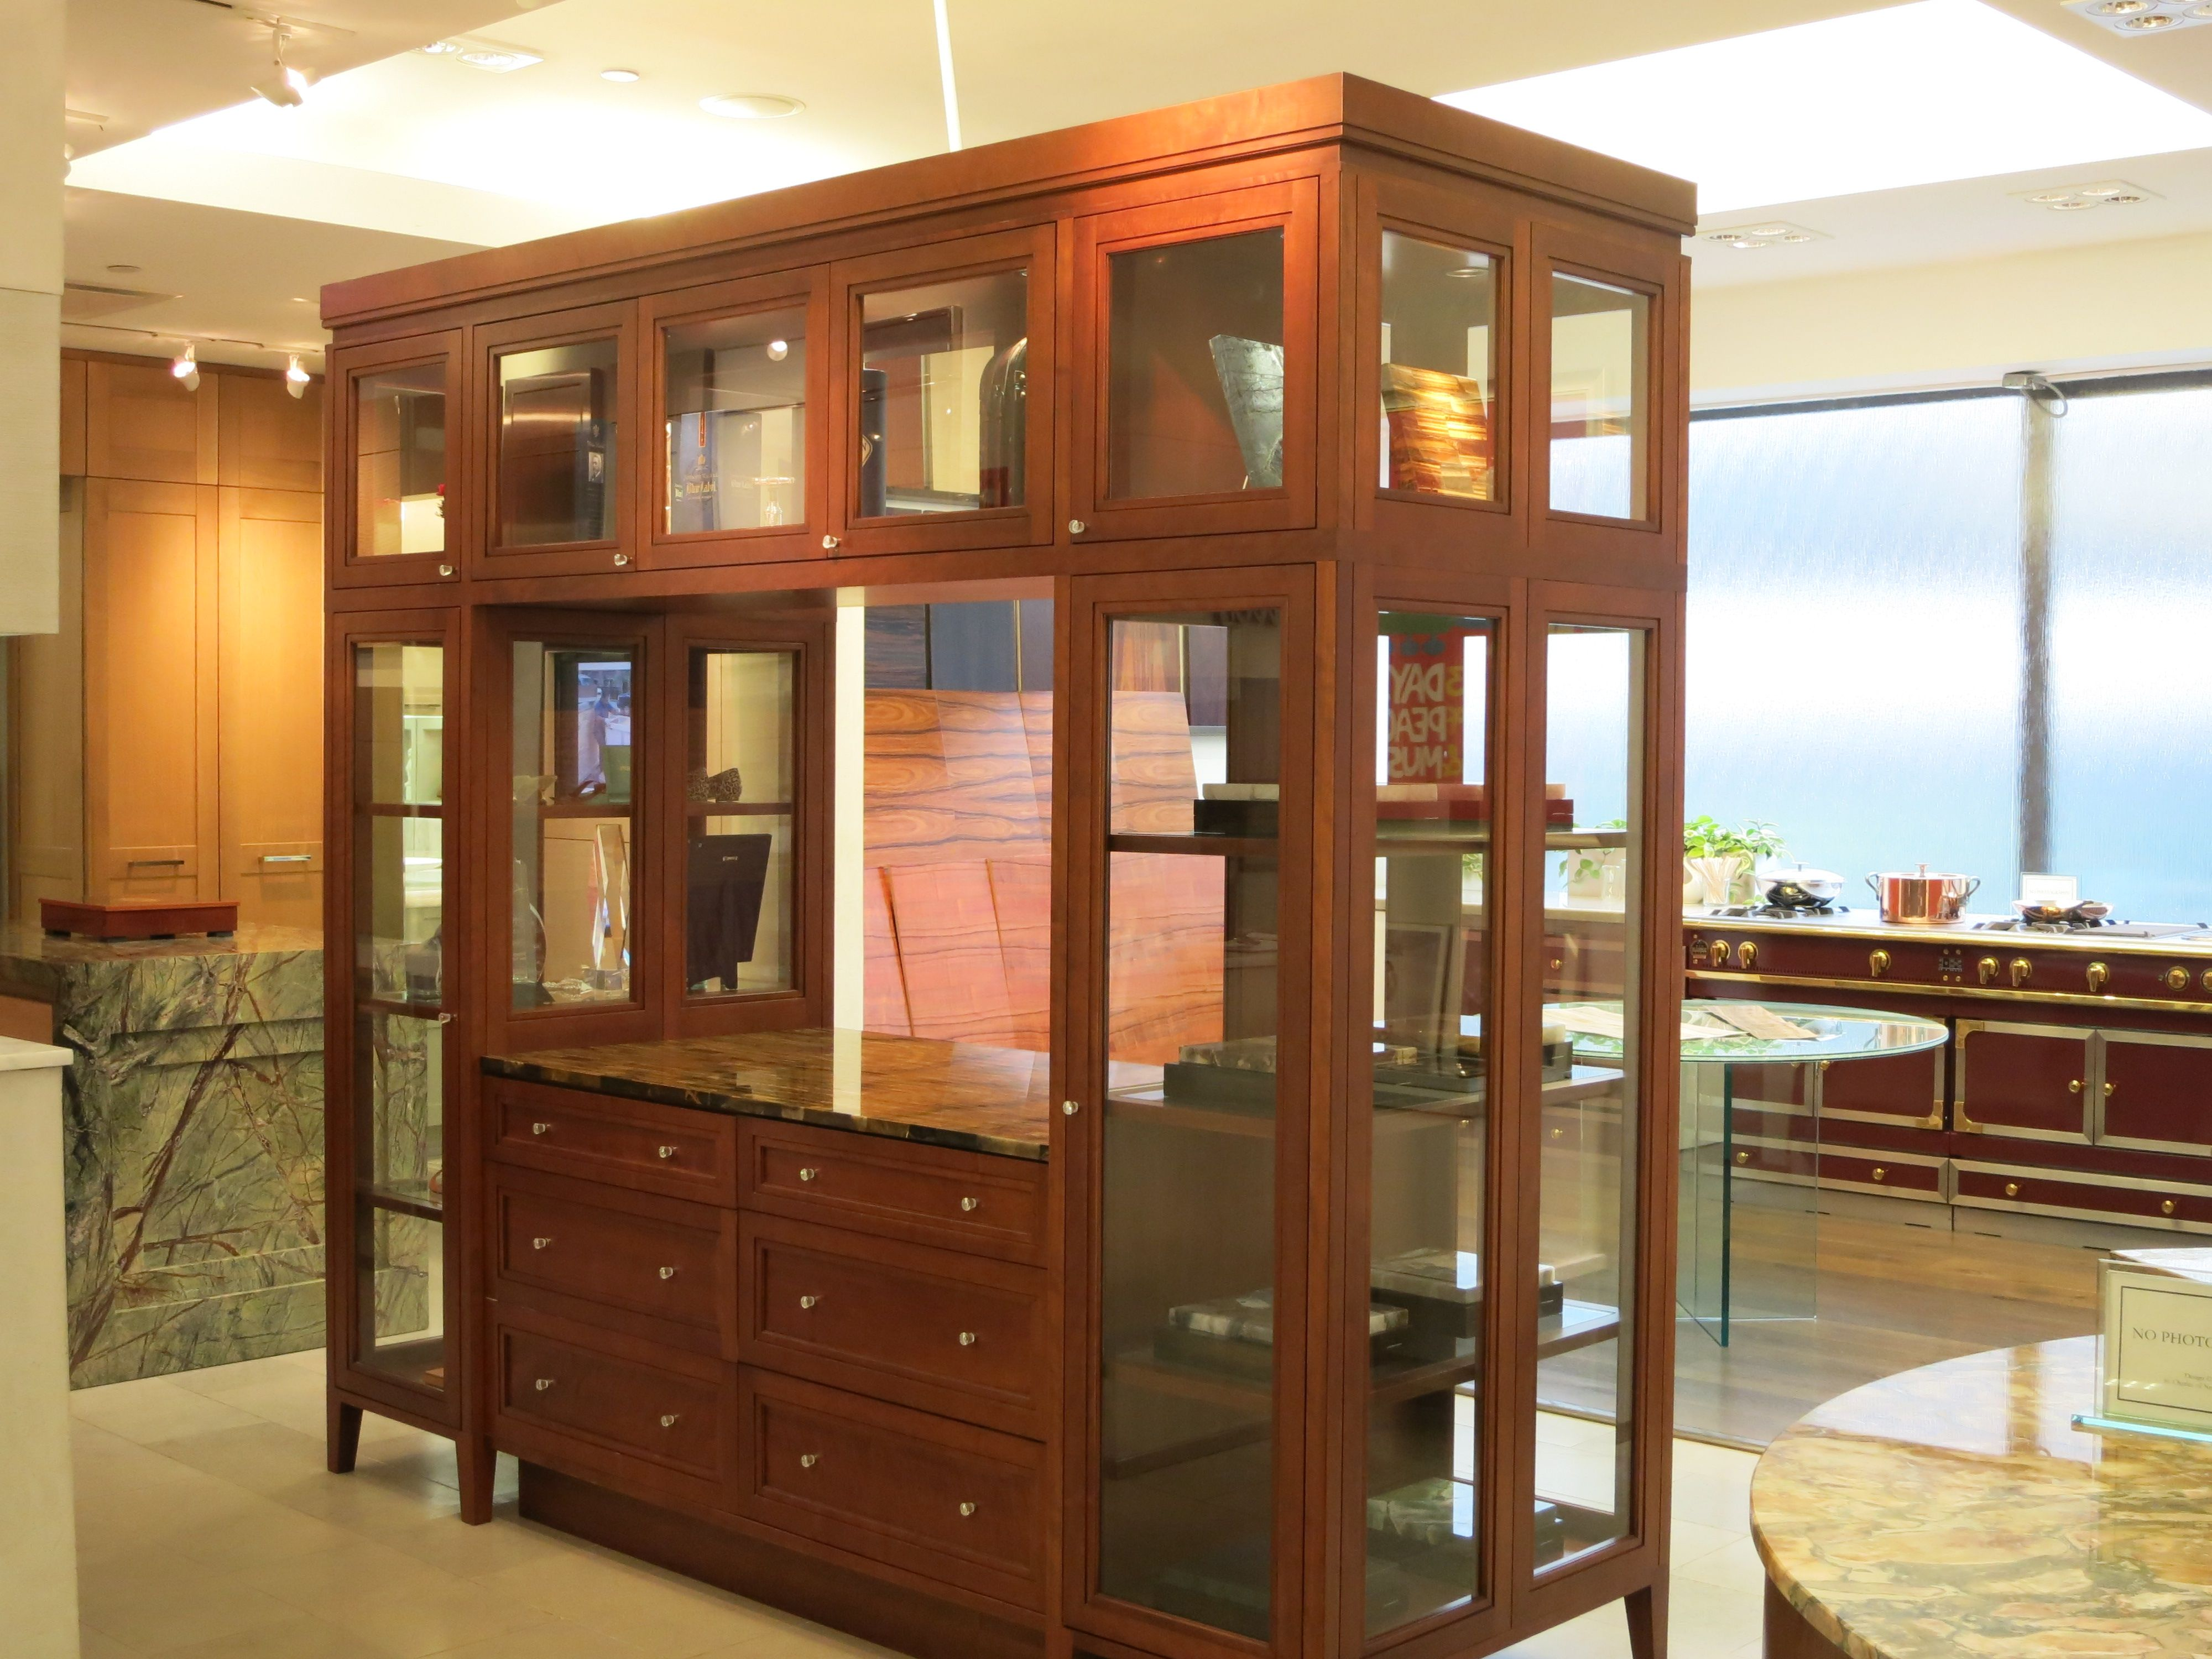 DBS Gallery Room Divider | Cabinets for sale, Divider ...